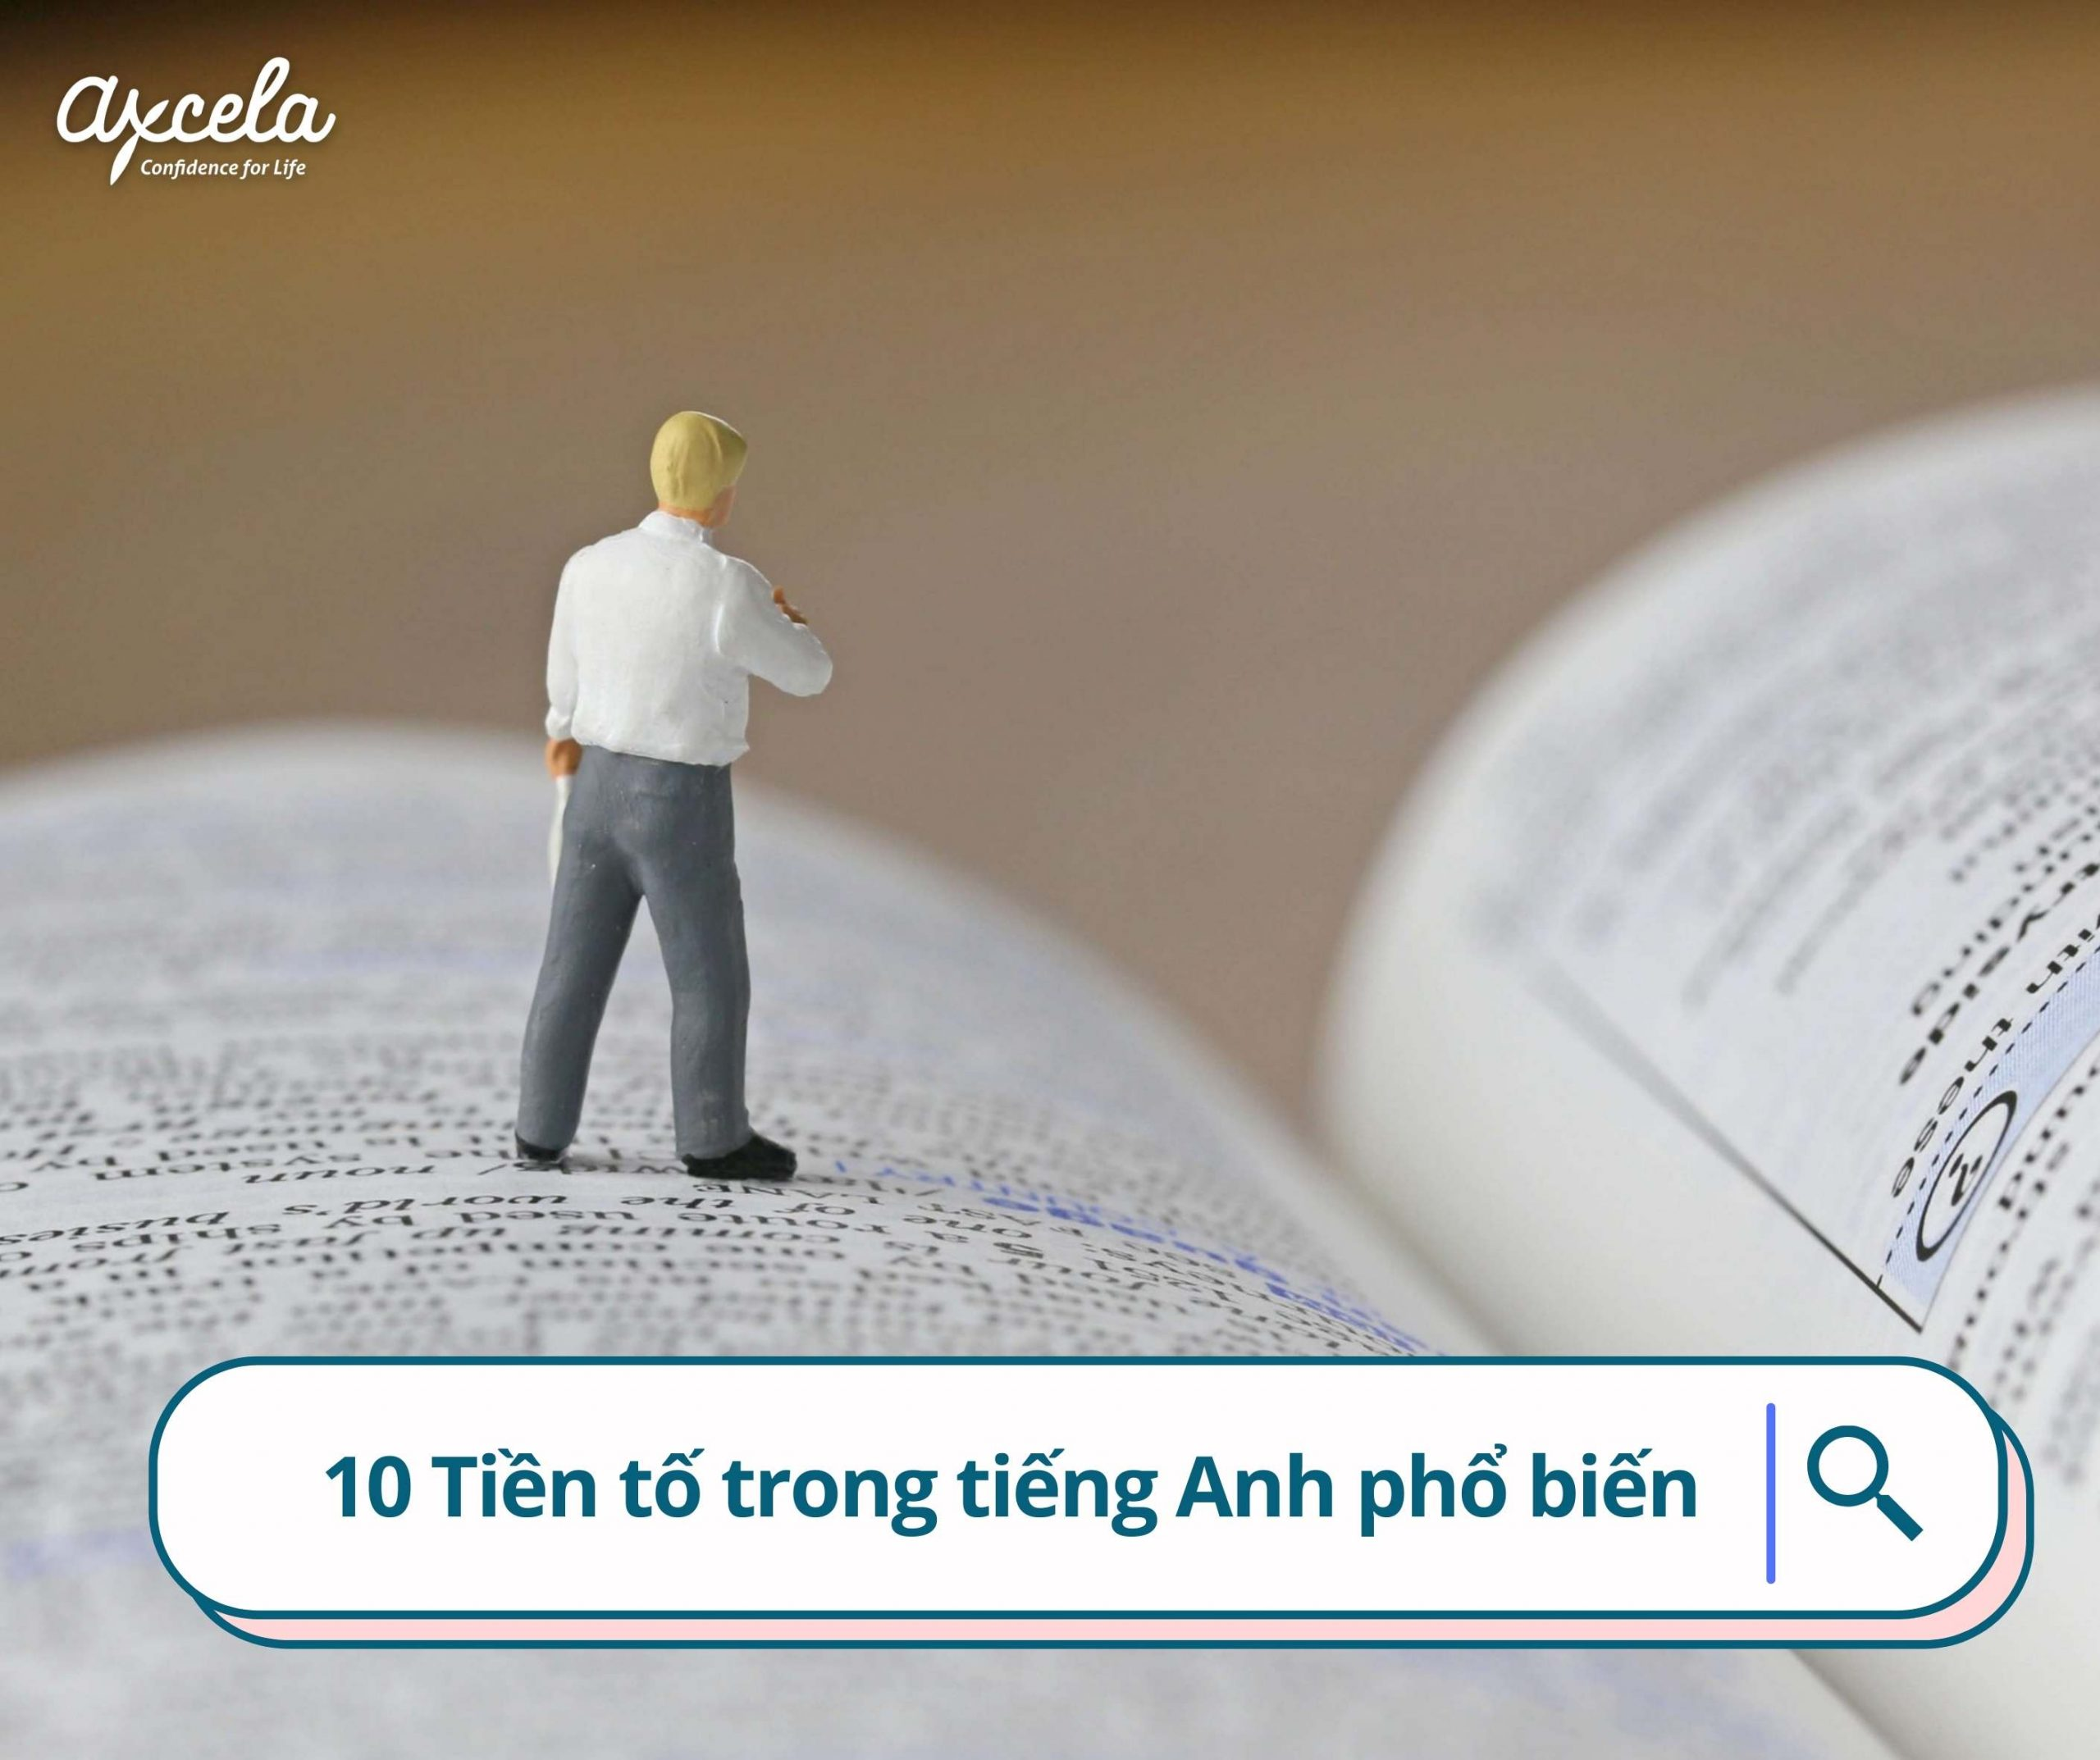 10-tien-to-trong-tieng-anh